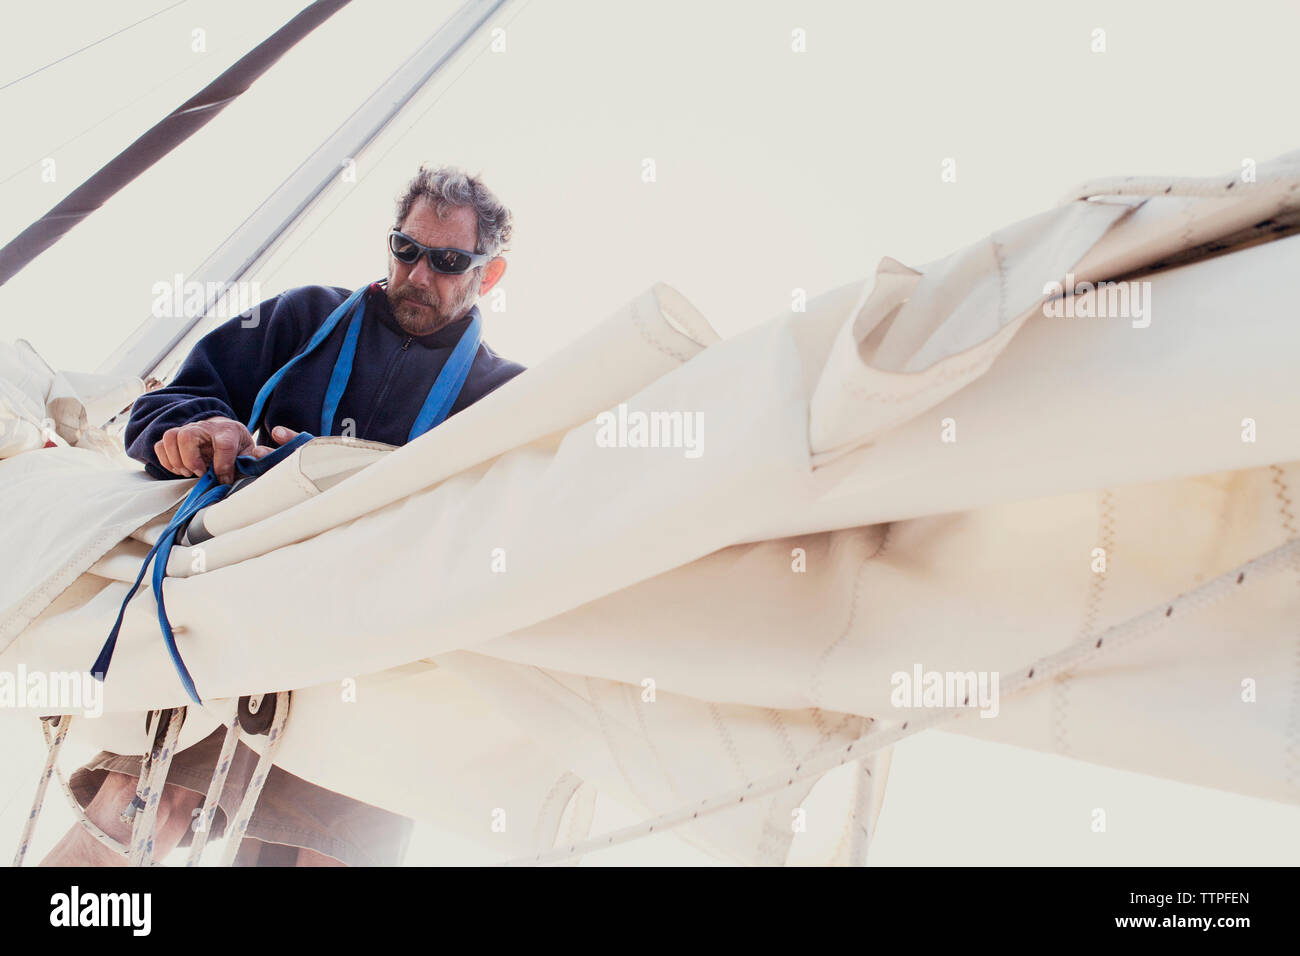 Low angle view of man tying sails of boat against clear sky - Stock Image